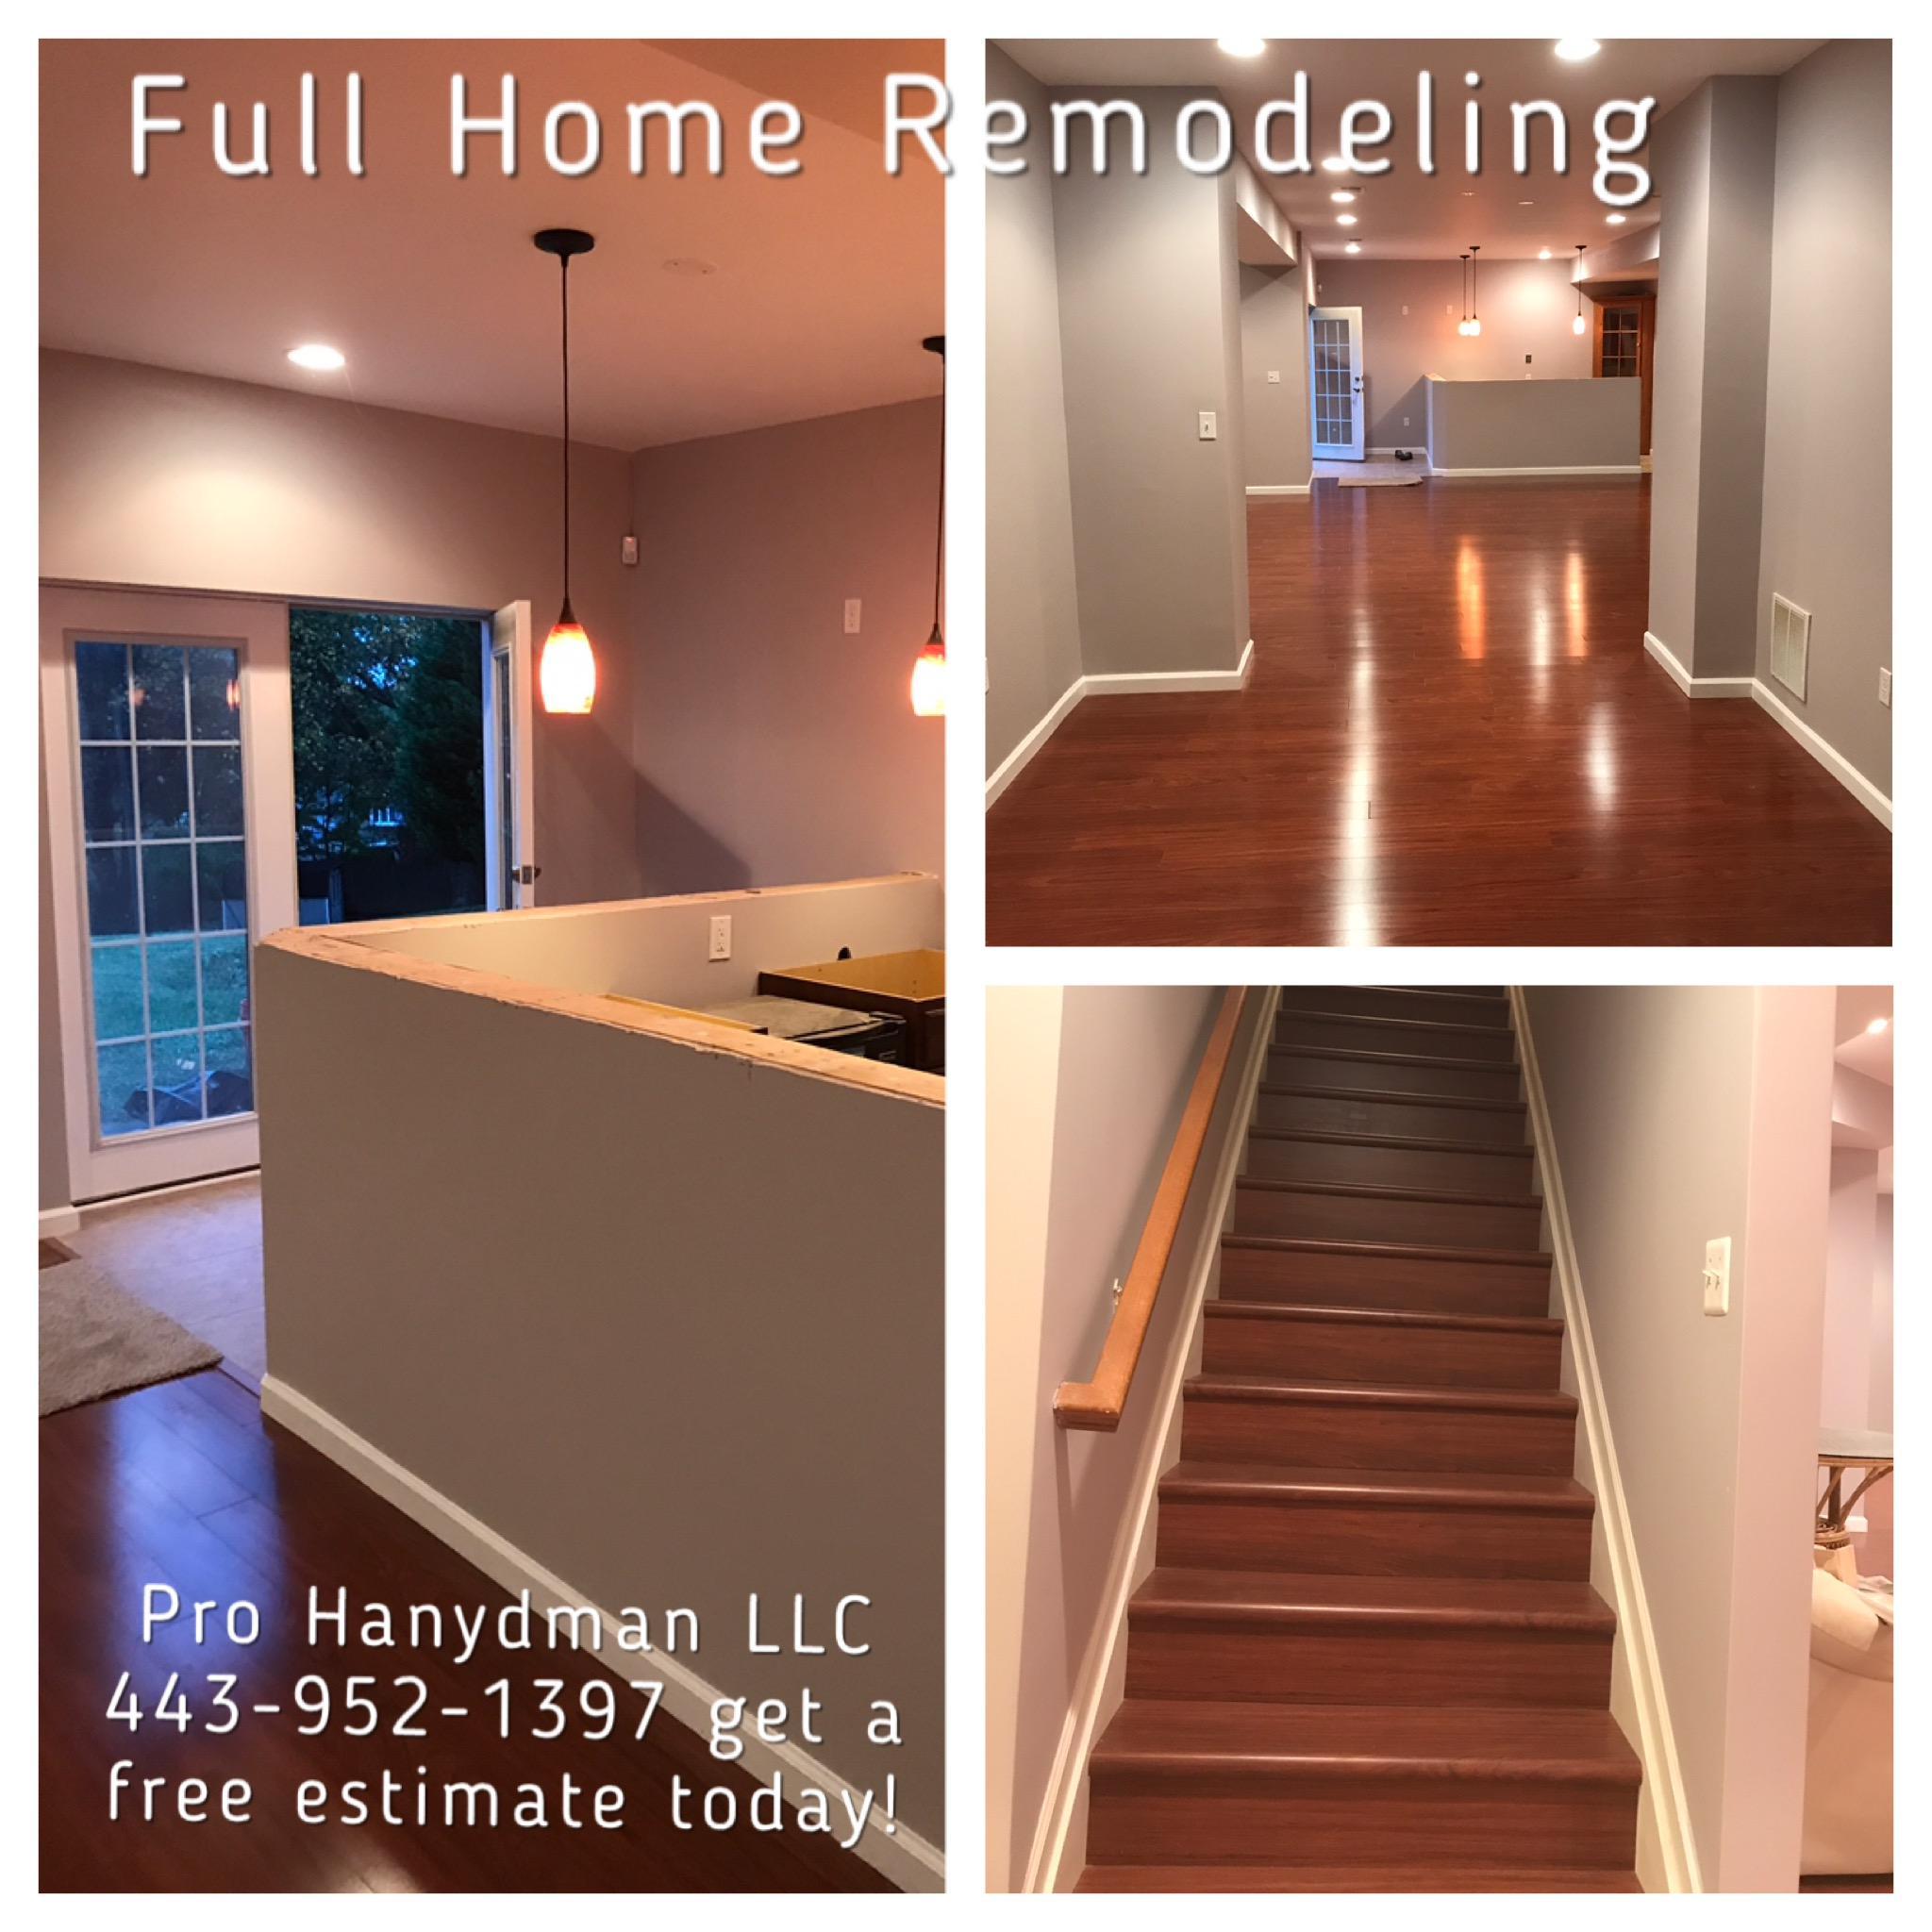 Full House Remodeling in Baltimore